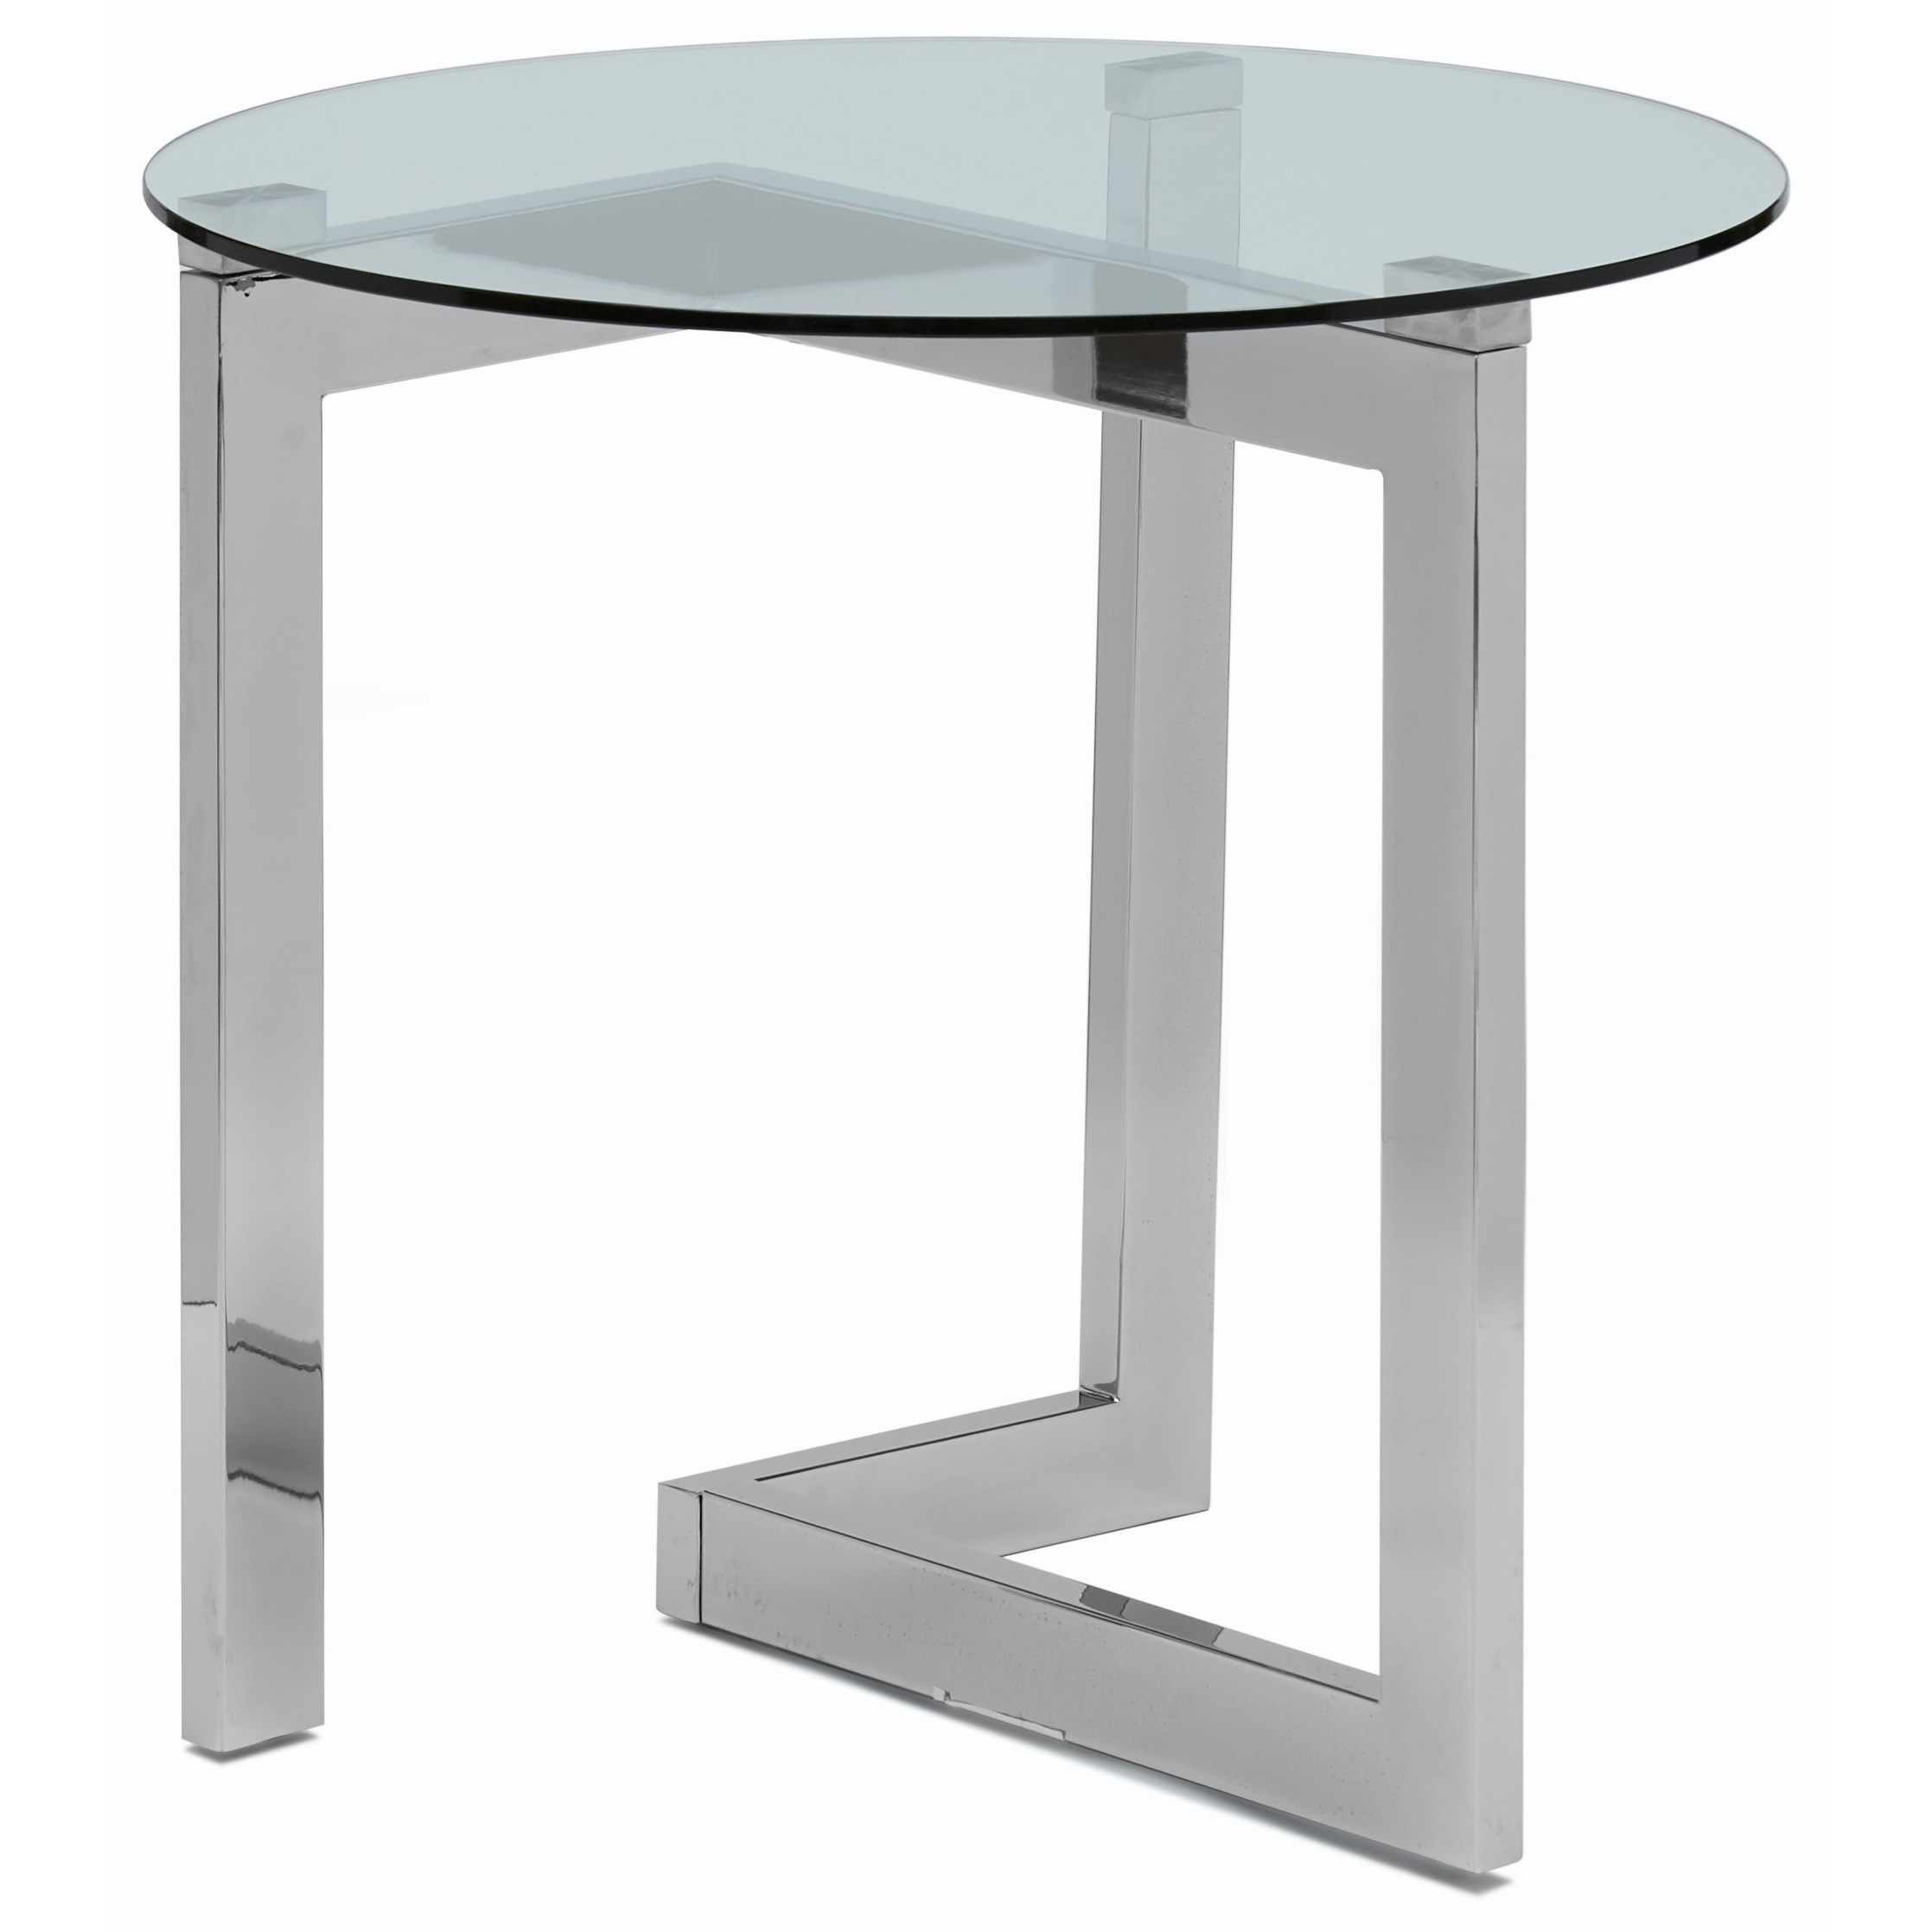 Aries Round End Table by Magnussen Home at Baer's Furniture